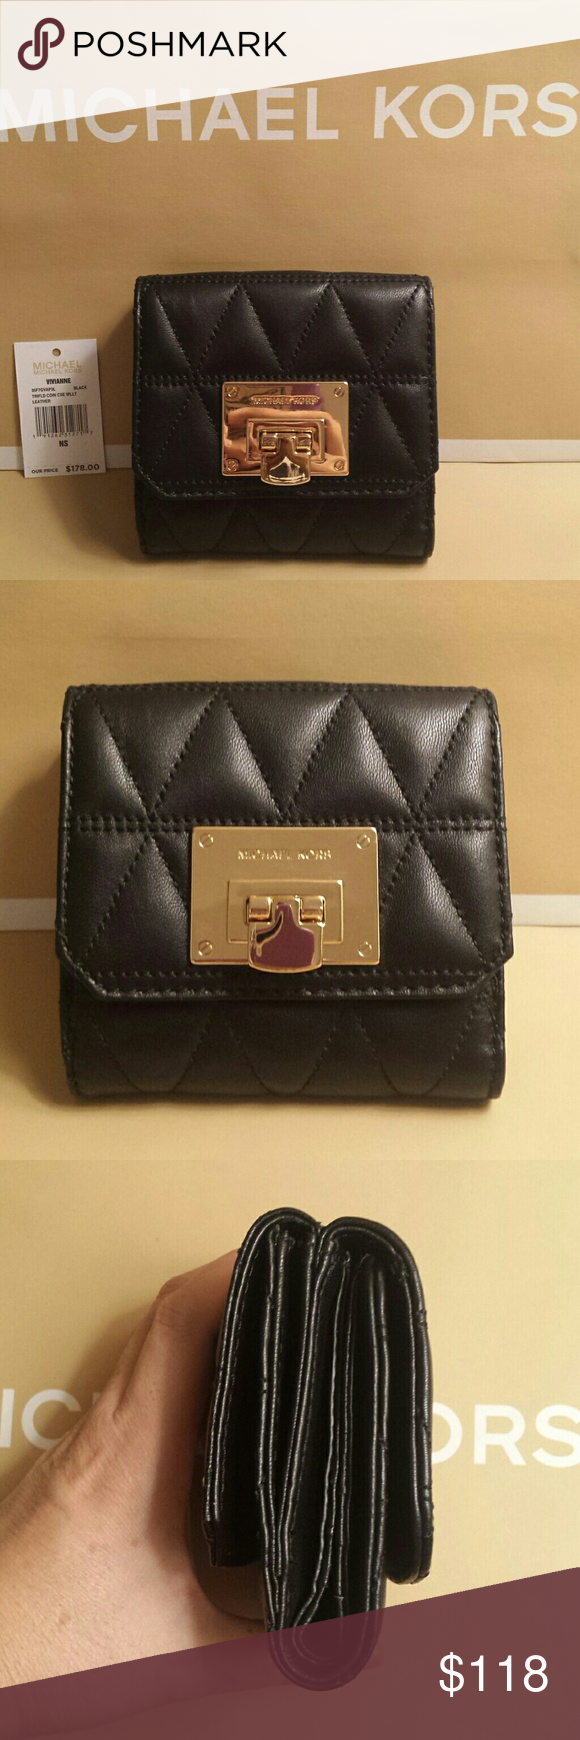 4e27695c6c24 Michael Kors Vivianne Trifold Quilted Wallet NWT Brand New with tag! Michael  Kors Vivianne Trifold Coin Case Wallet Black Leather This quilted black  leather ...